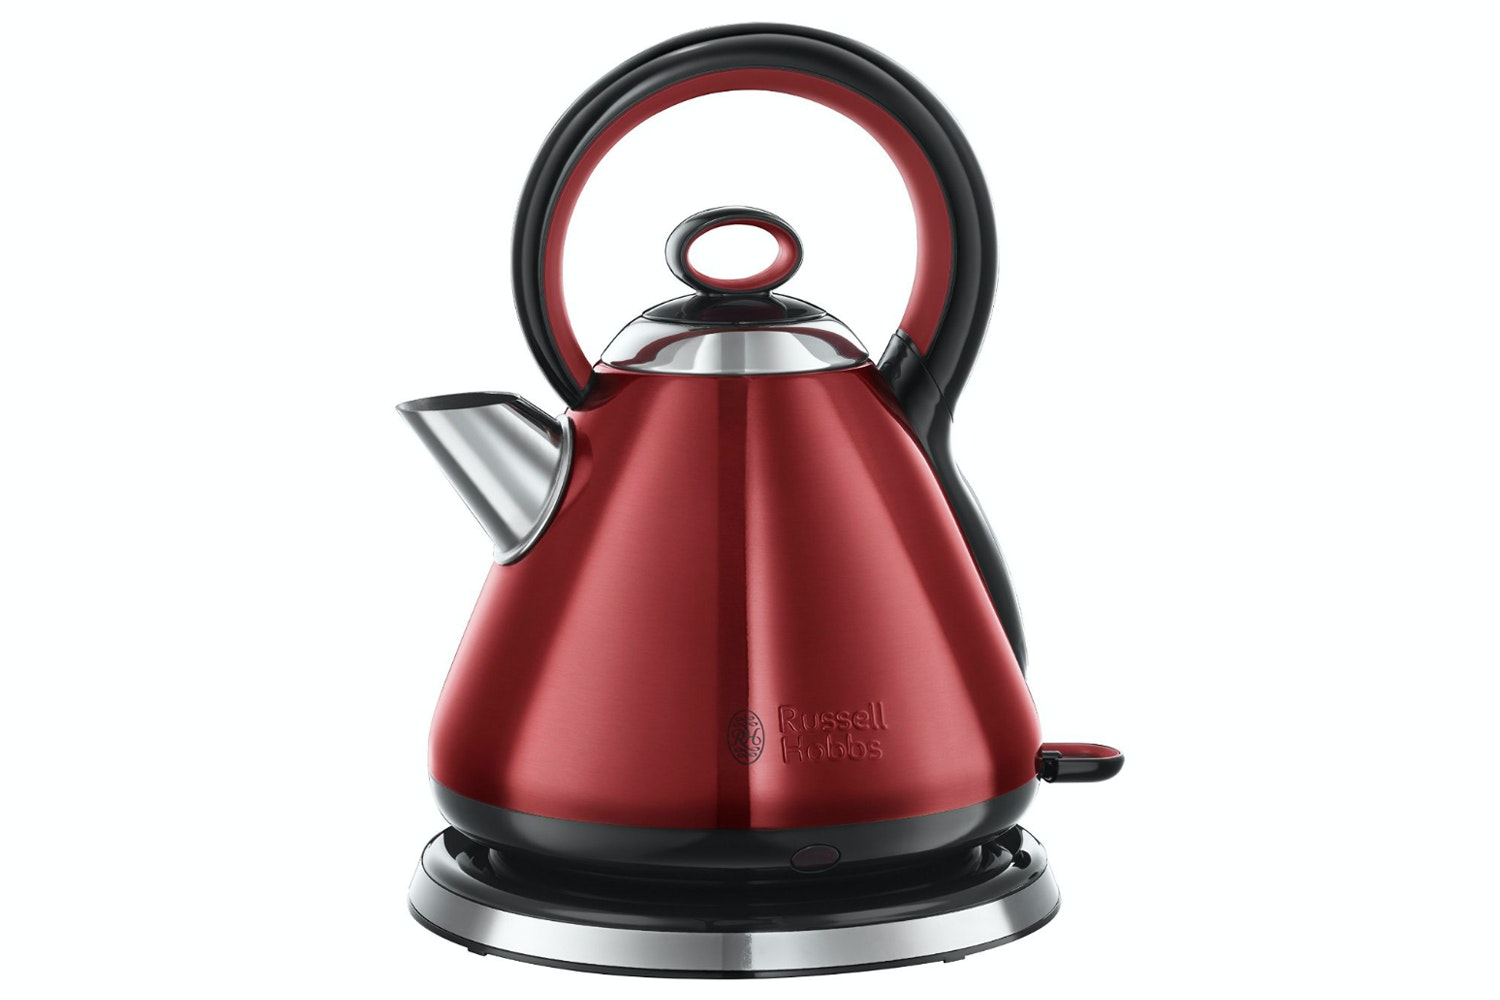 Russell Hobbs 1.7L Legacy Kettle | Metallic Red